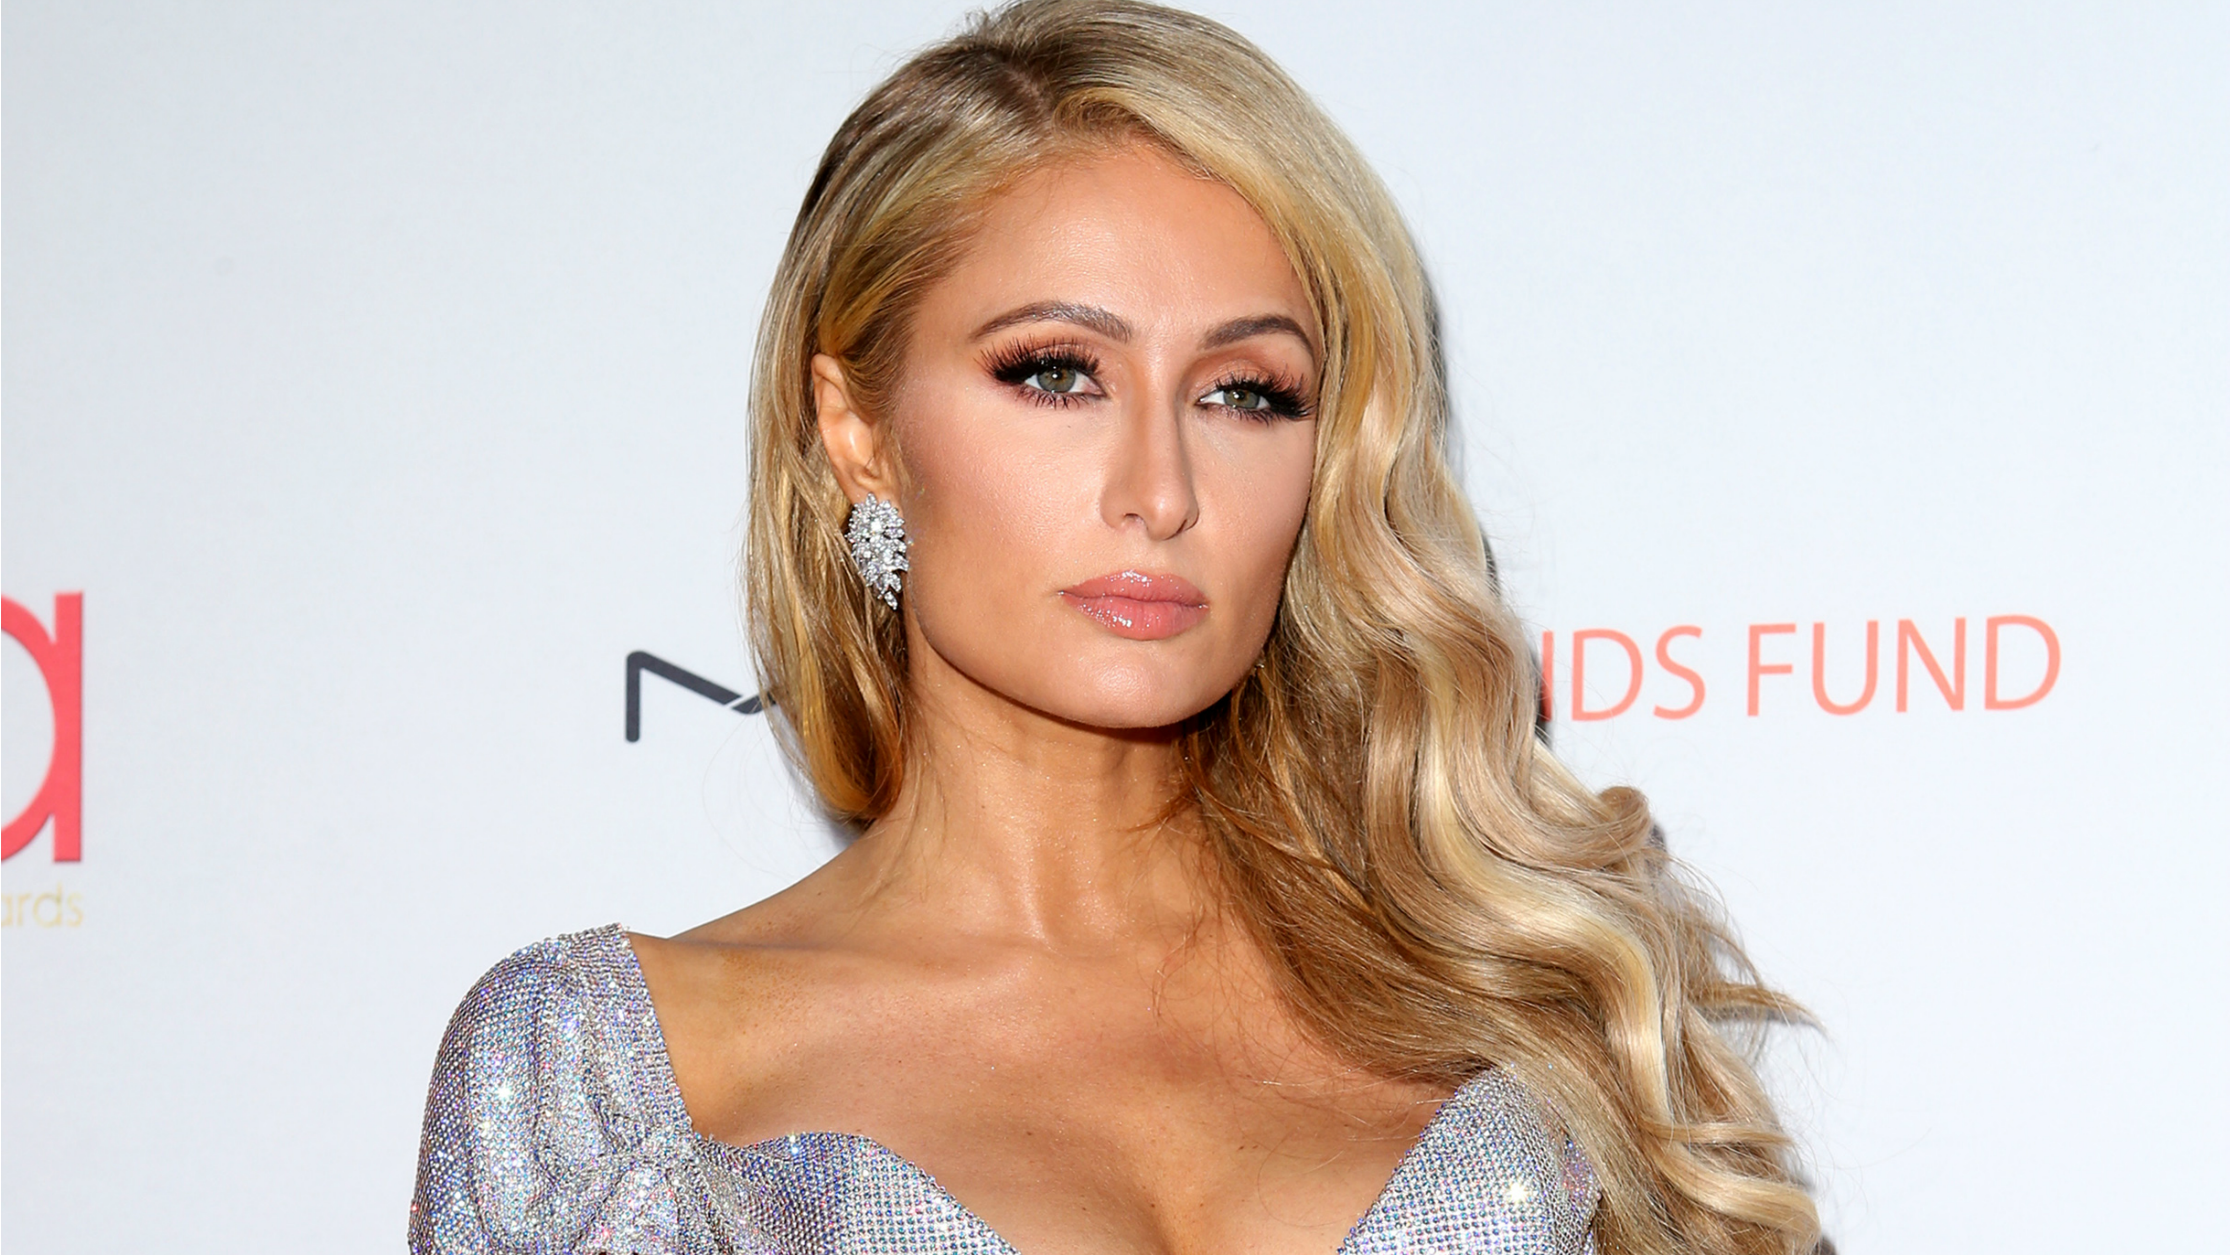 Paris Hilton Family 2020, Biography, and Net Worth Updates